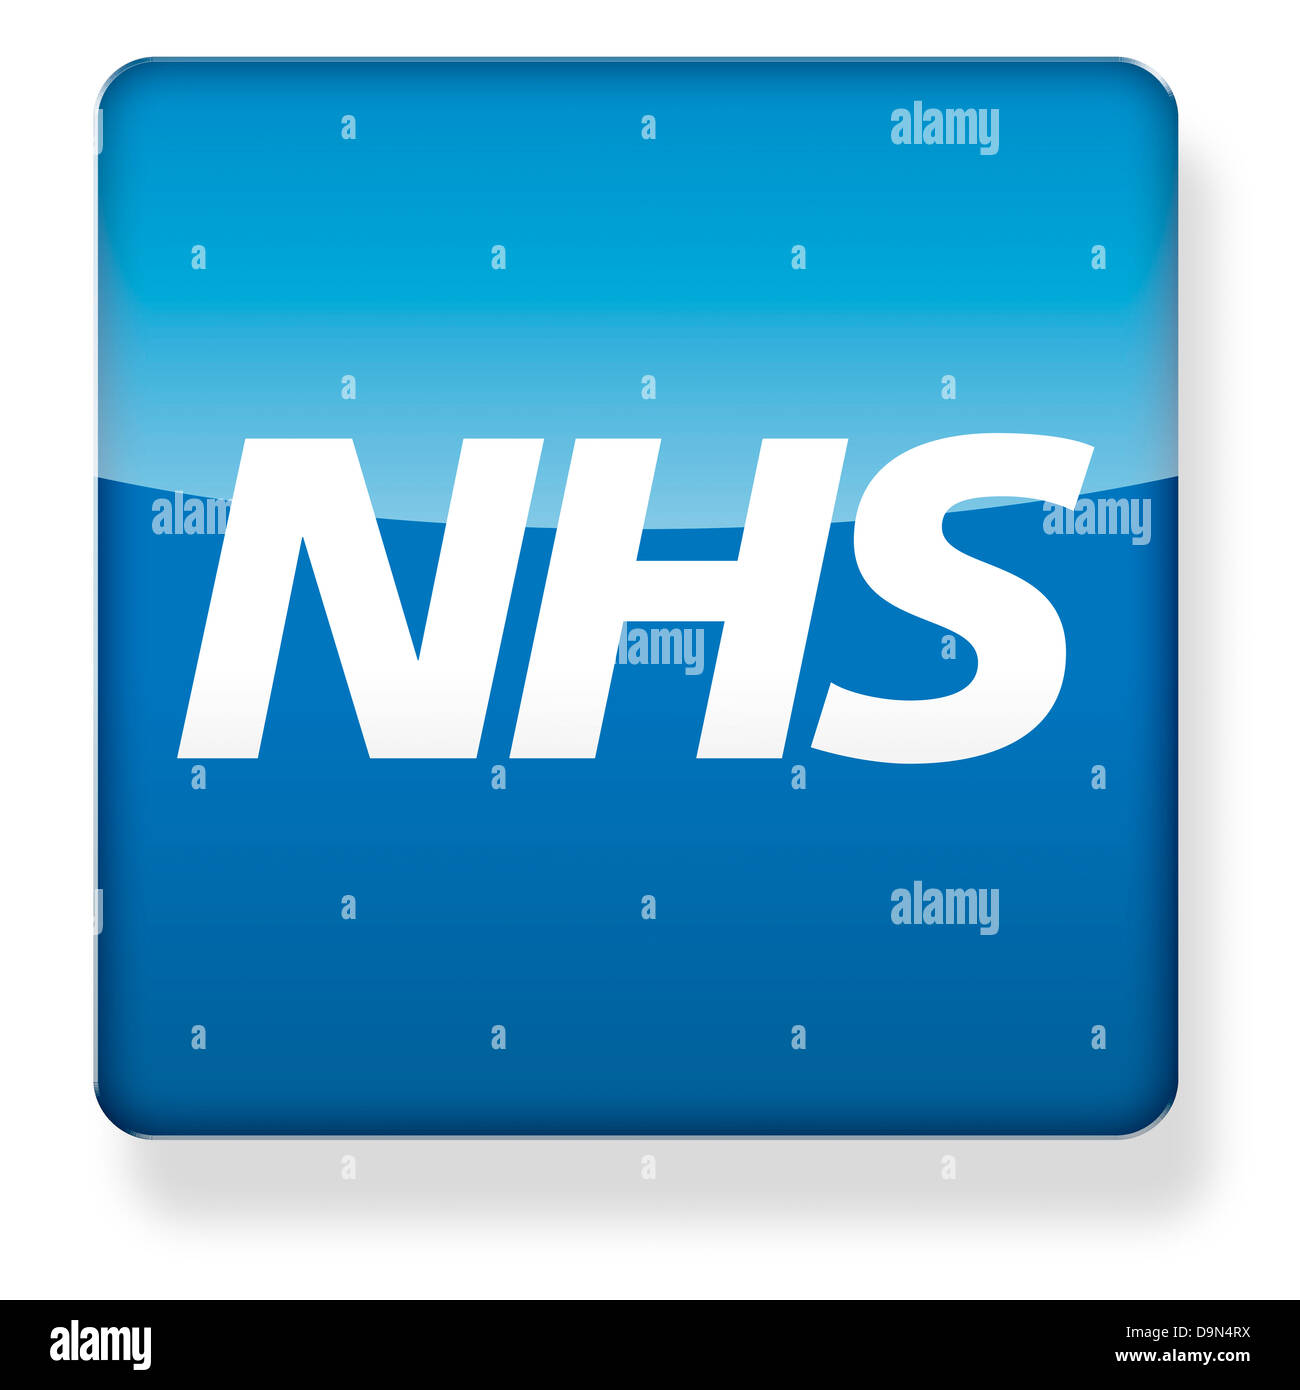 NHS logo as an app icon. Clipping path included. - Stock Image